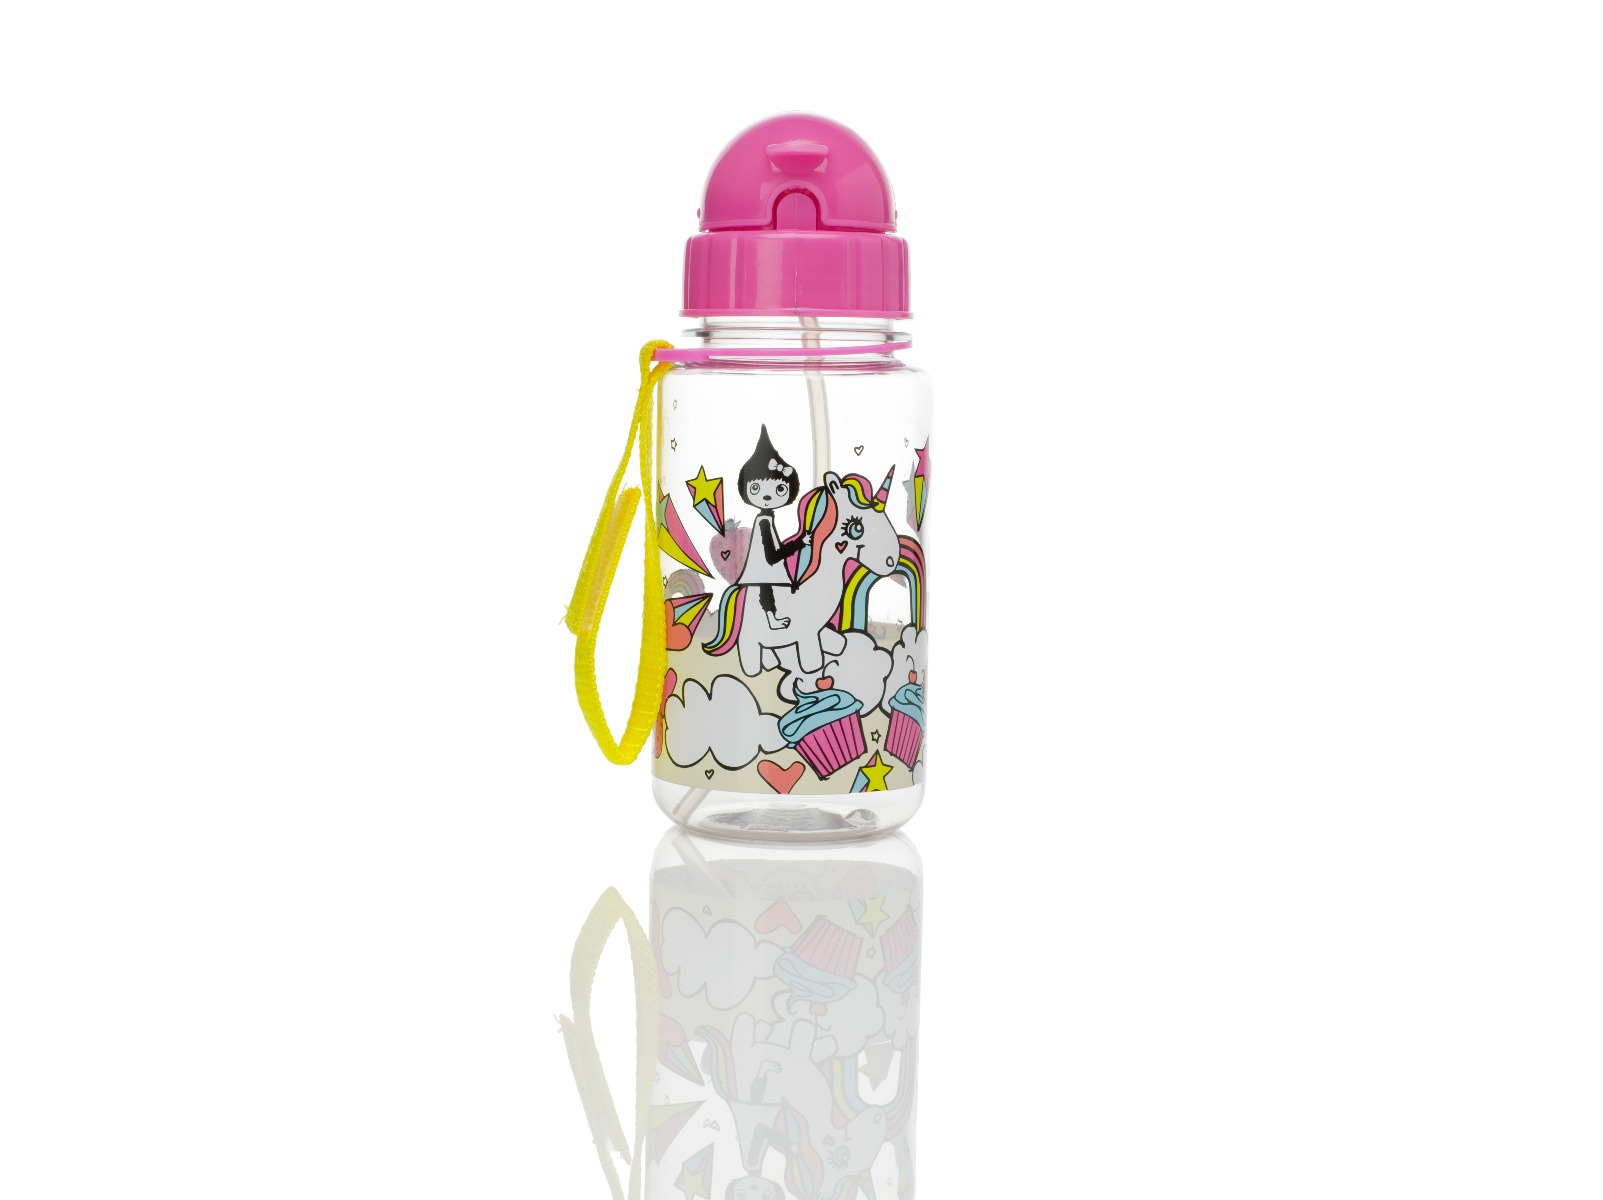 Zip and Zoe Drinking Bottle with Straw Unicorn